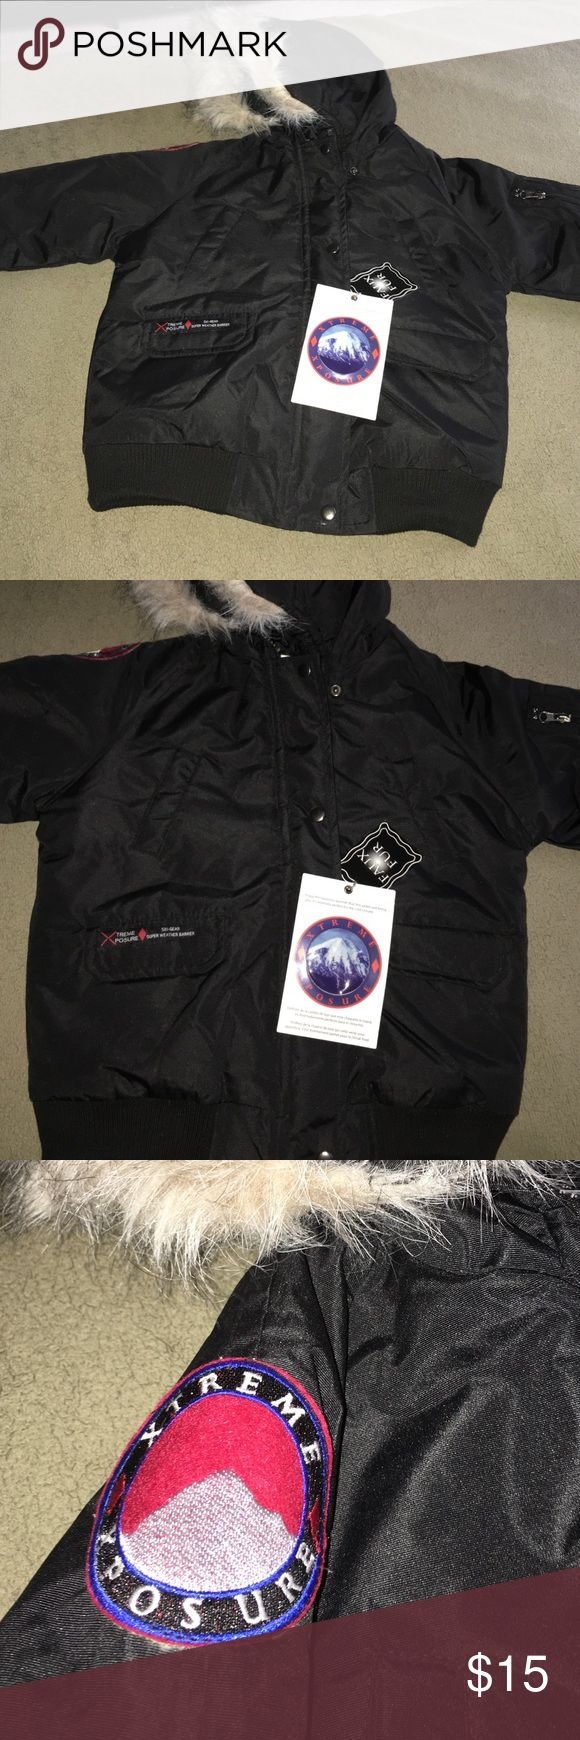 Super Cute & Warm Jacket Very cute ski weather jacket with 4 front pockets and a pocket on the sleeve, this jacket zippers and buttons up with a faux fur hood. Great price! 😀 Jackets & Coats